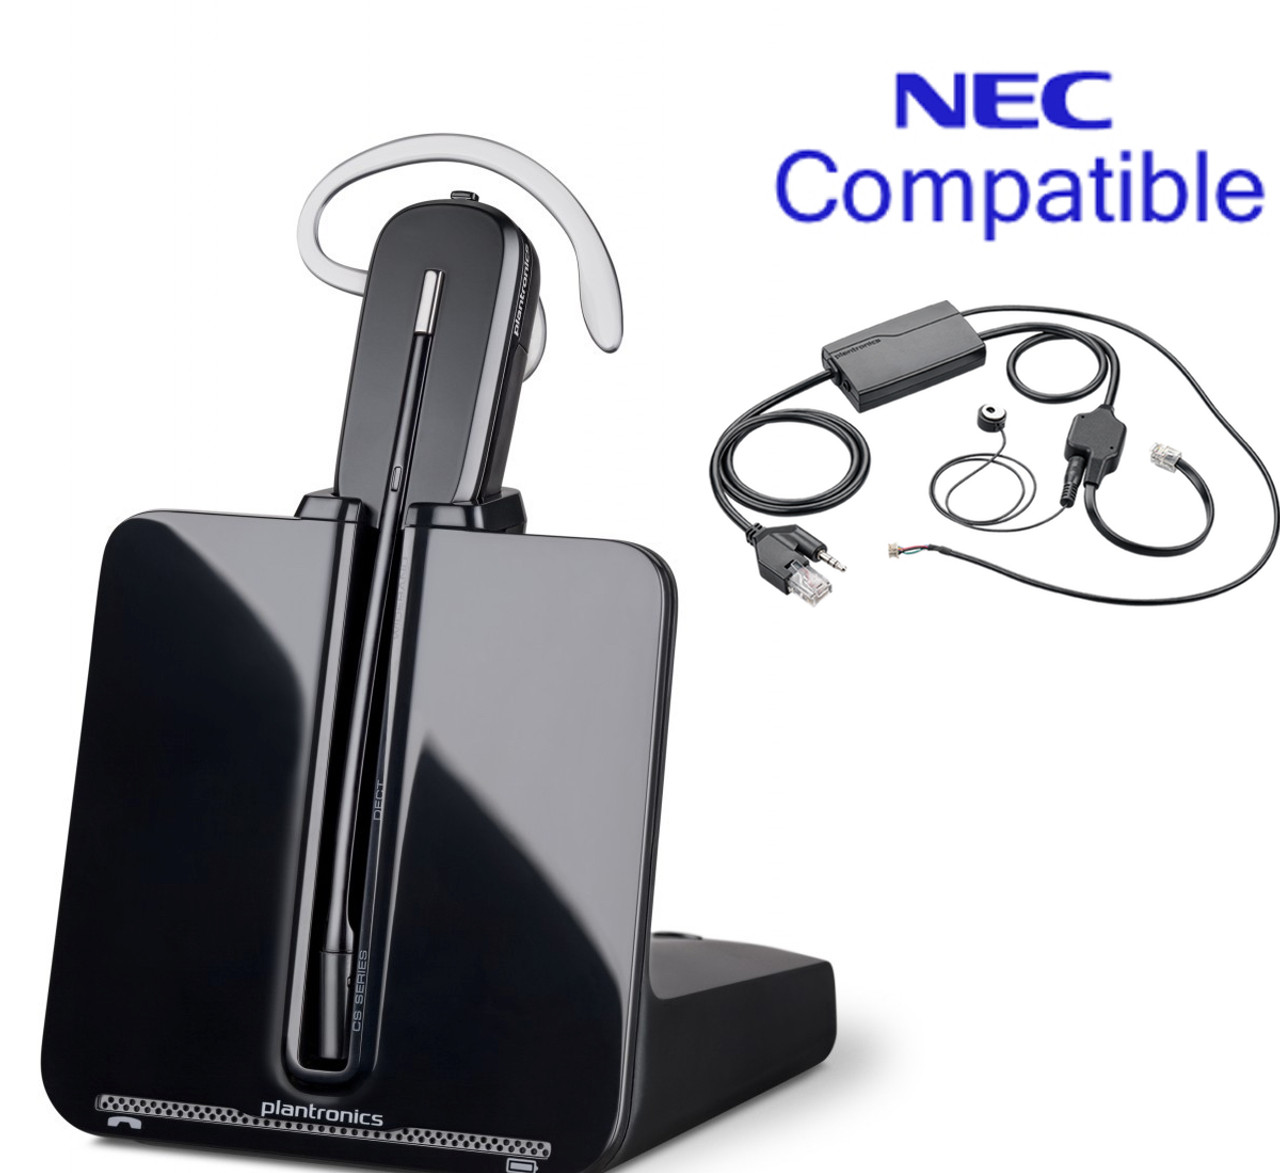 Nec Compatible Plantronics Cordless Headset Bundle Cs540 Ehs With Electronic Remote Answerer Nec Phones Dt850 Dt830 Dt 750 Dt 730 Dt 330